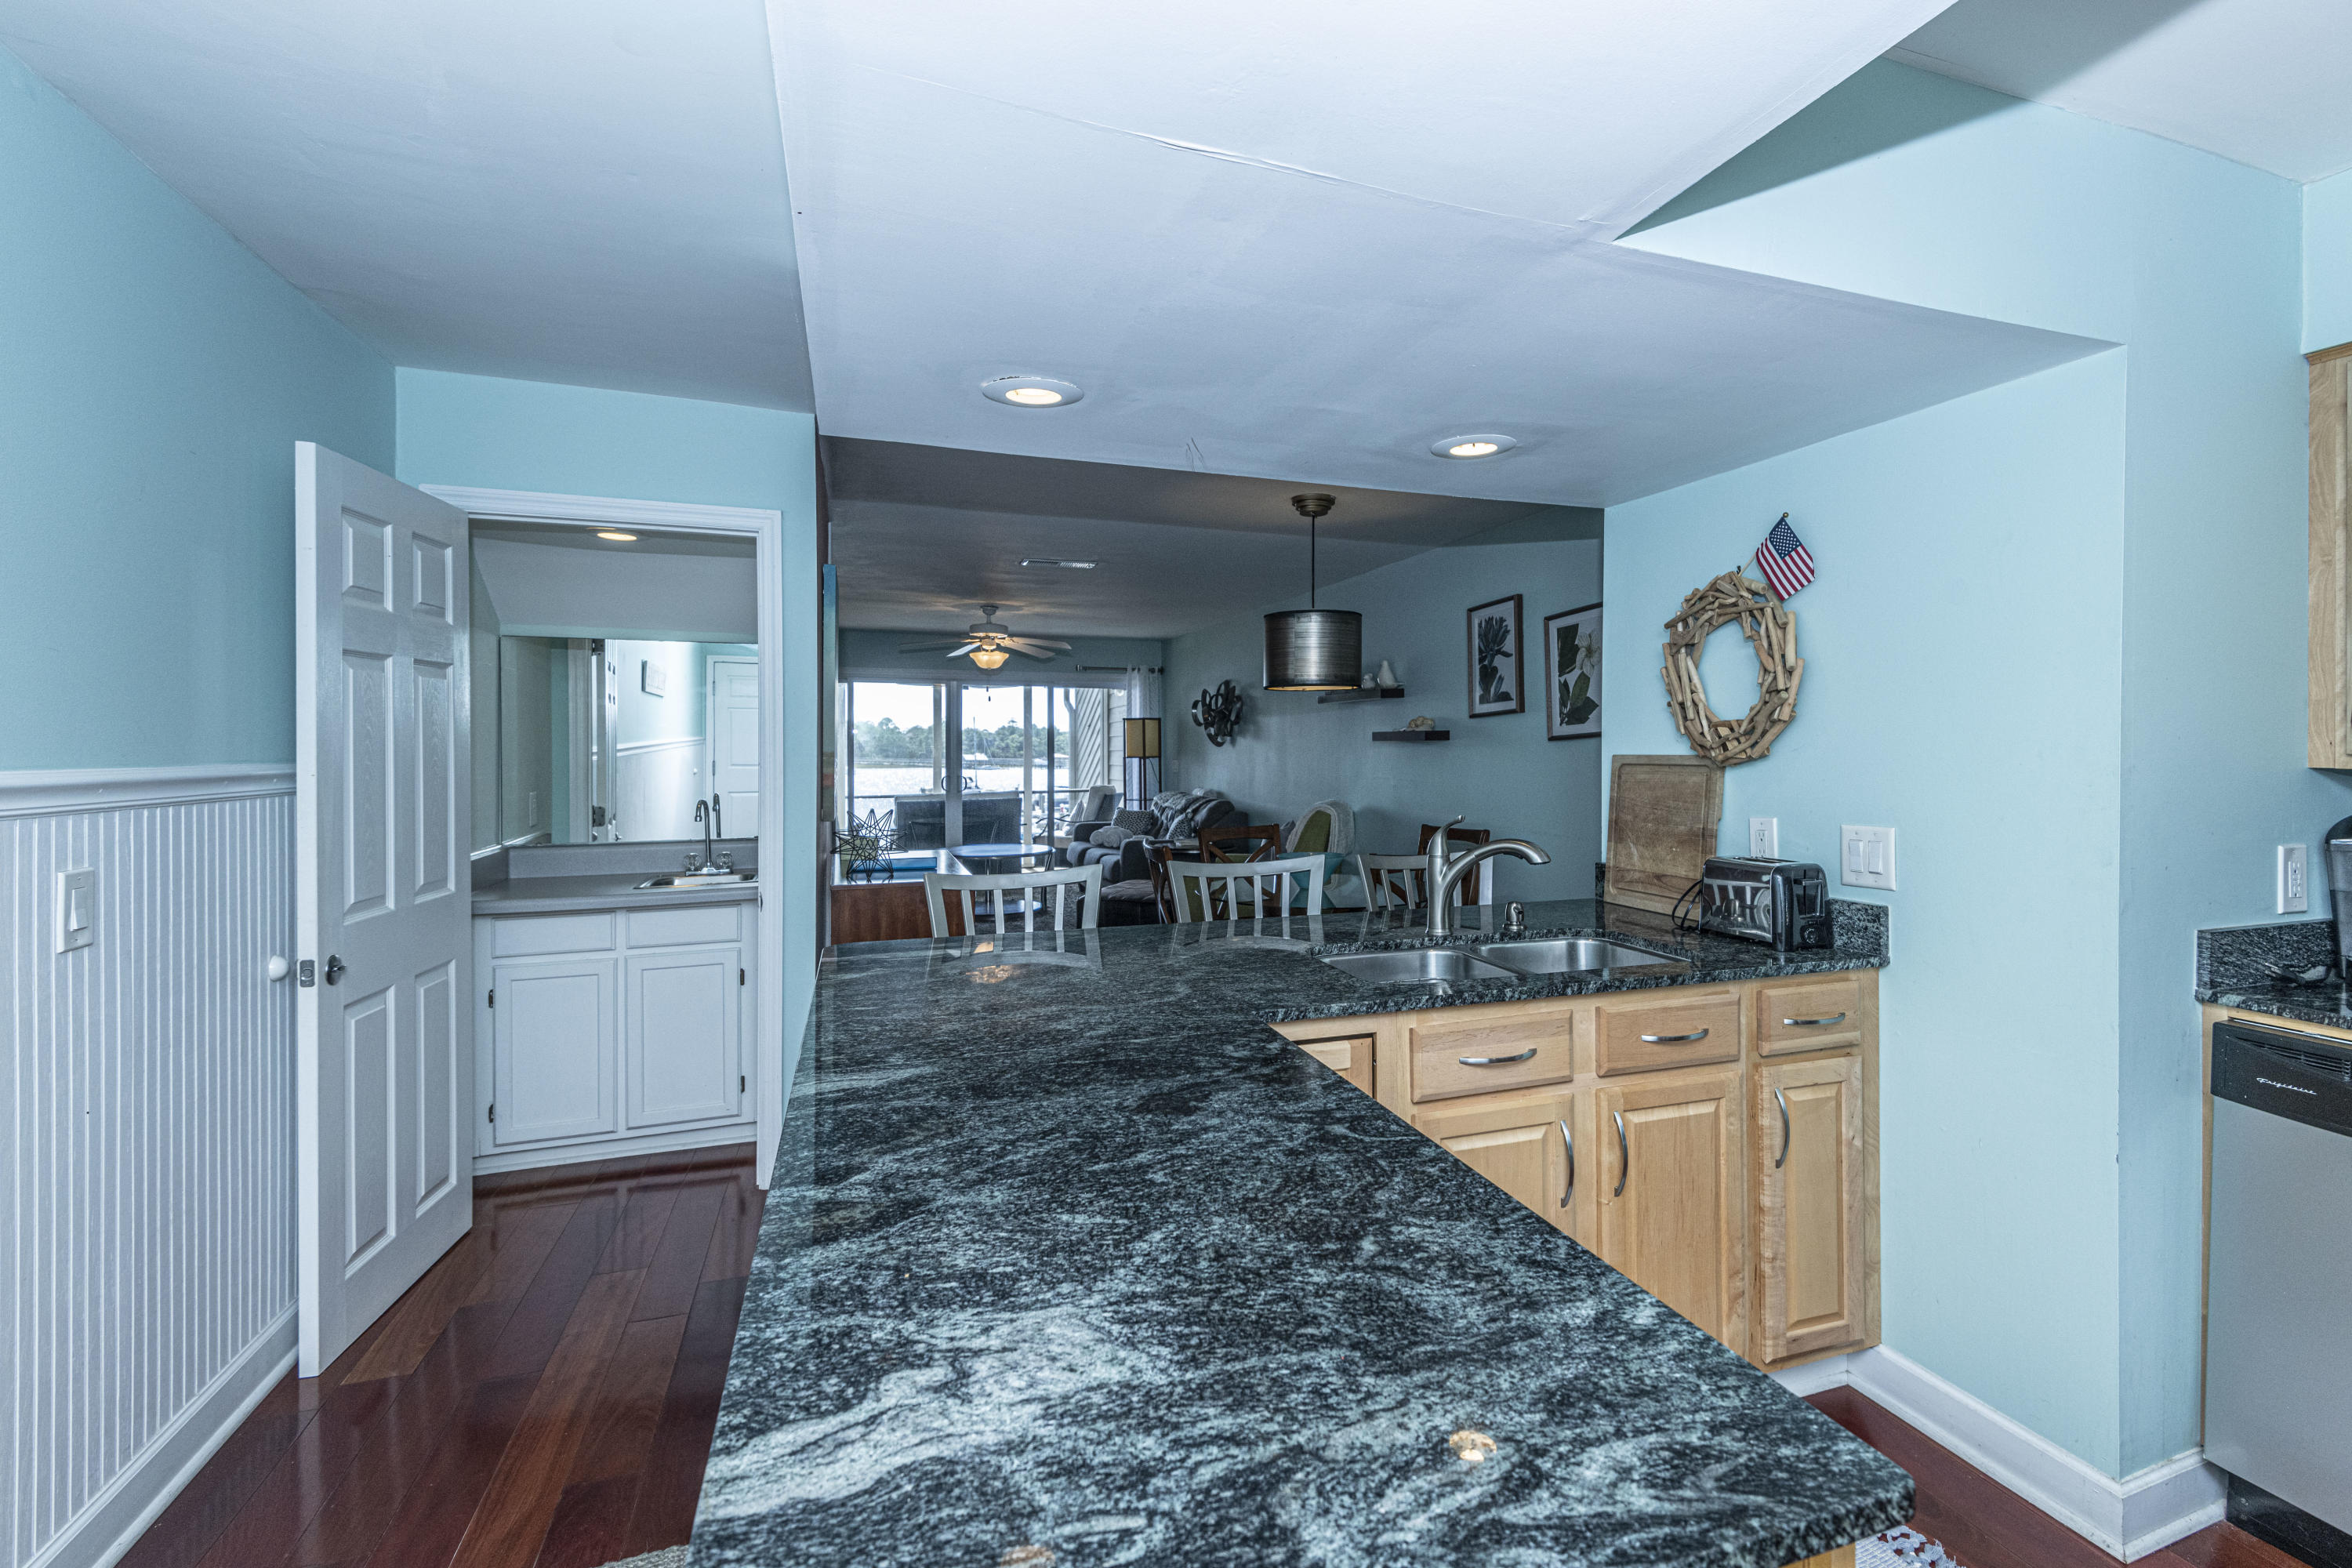 Mariners Cay Homes For Sale - 60 Mariners Cay, Folly Beach, SC - 4